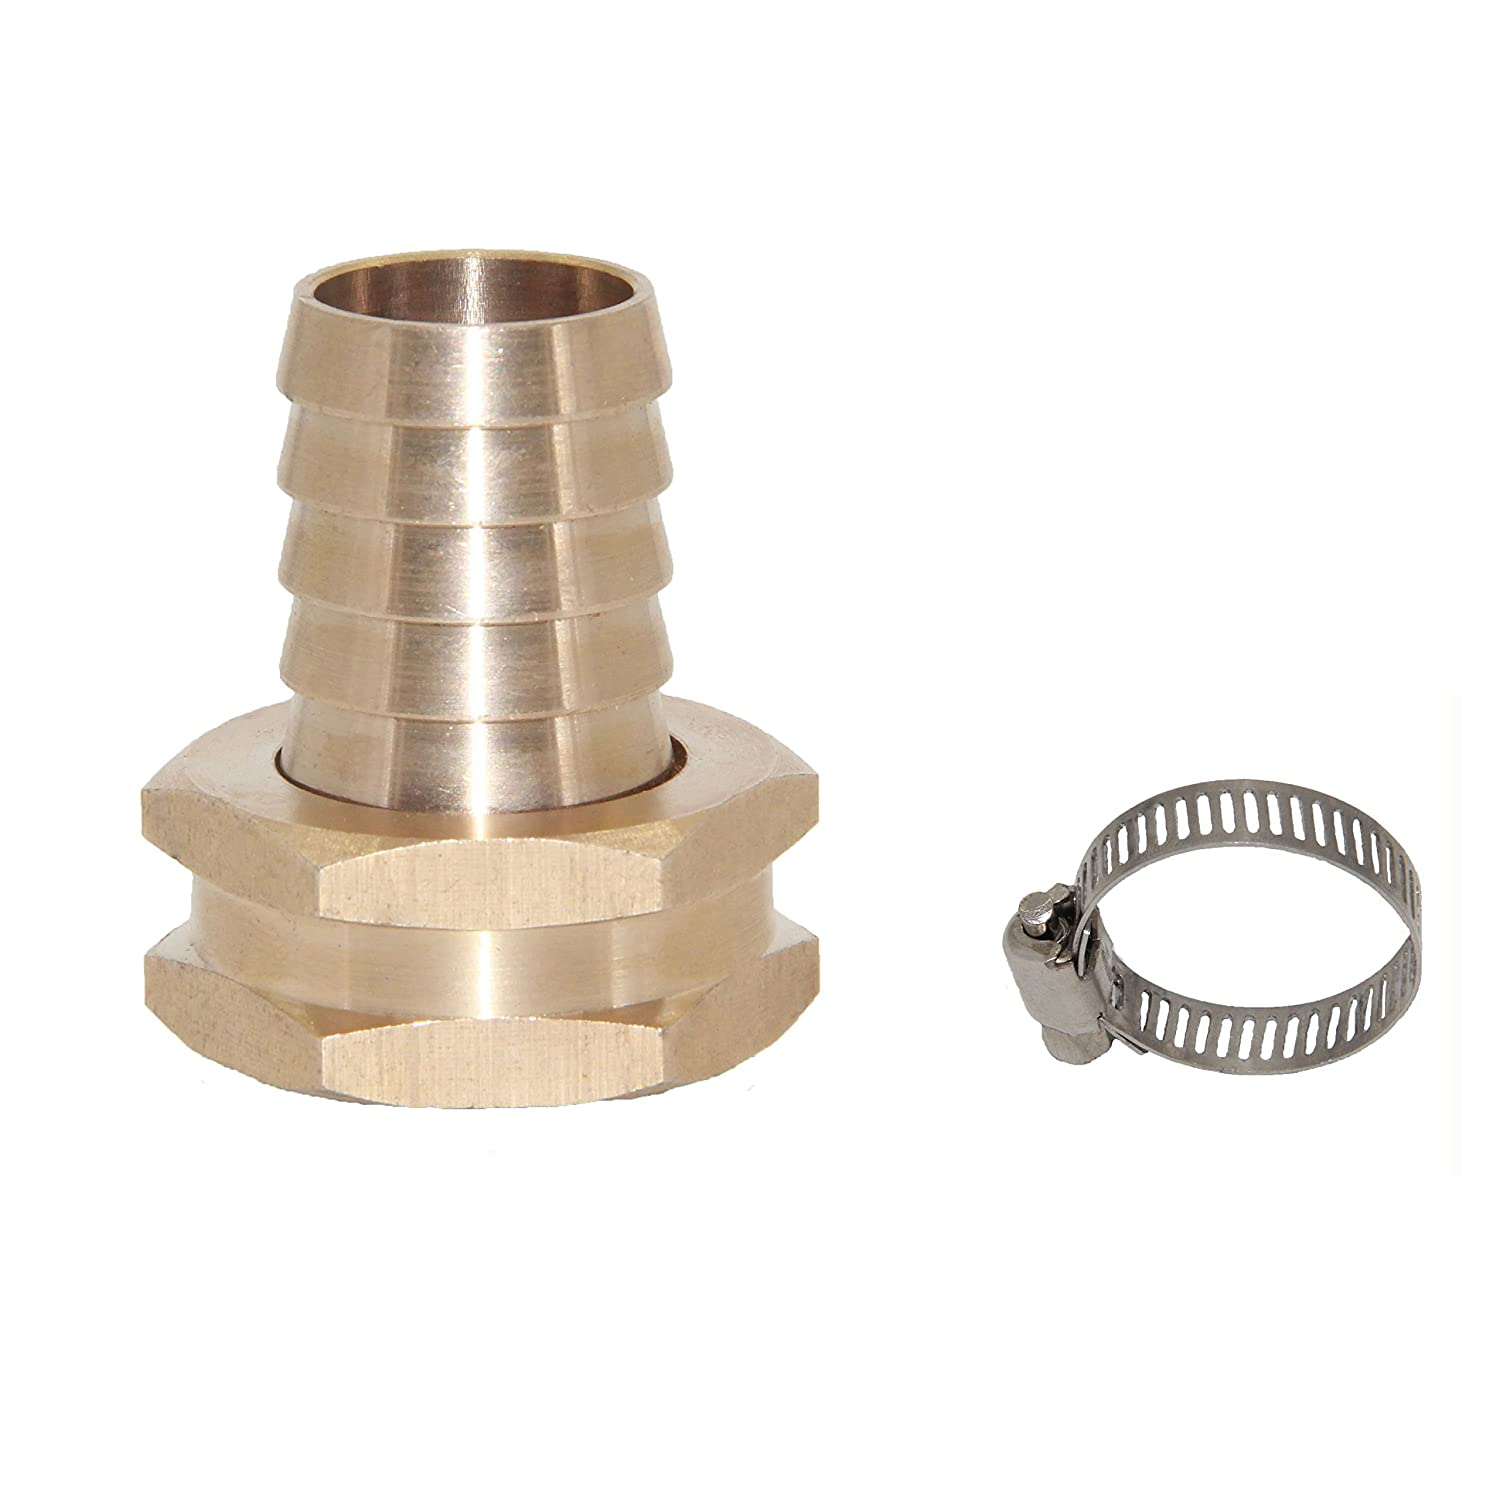 "Joyway 5/8"" Barb x 3/4"" Female GHT Thread Swivel Hex Brass Garden Water Hose Pipe Connector Copper Fitting with Stainless Clamp House/Boat / Lawn/Power Wash/Irrigation"